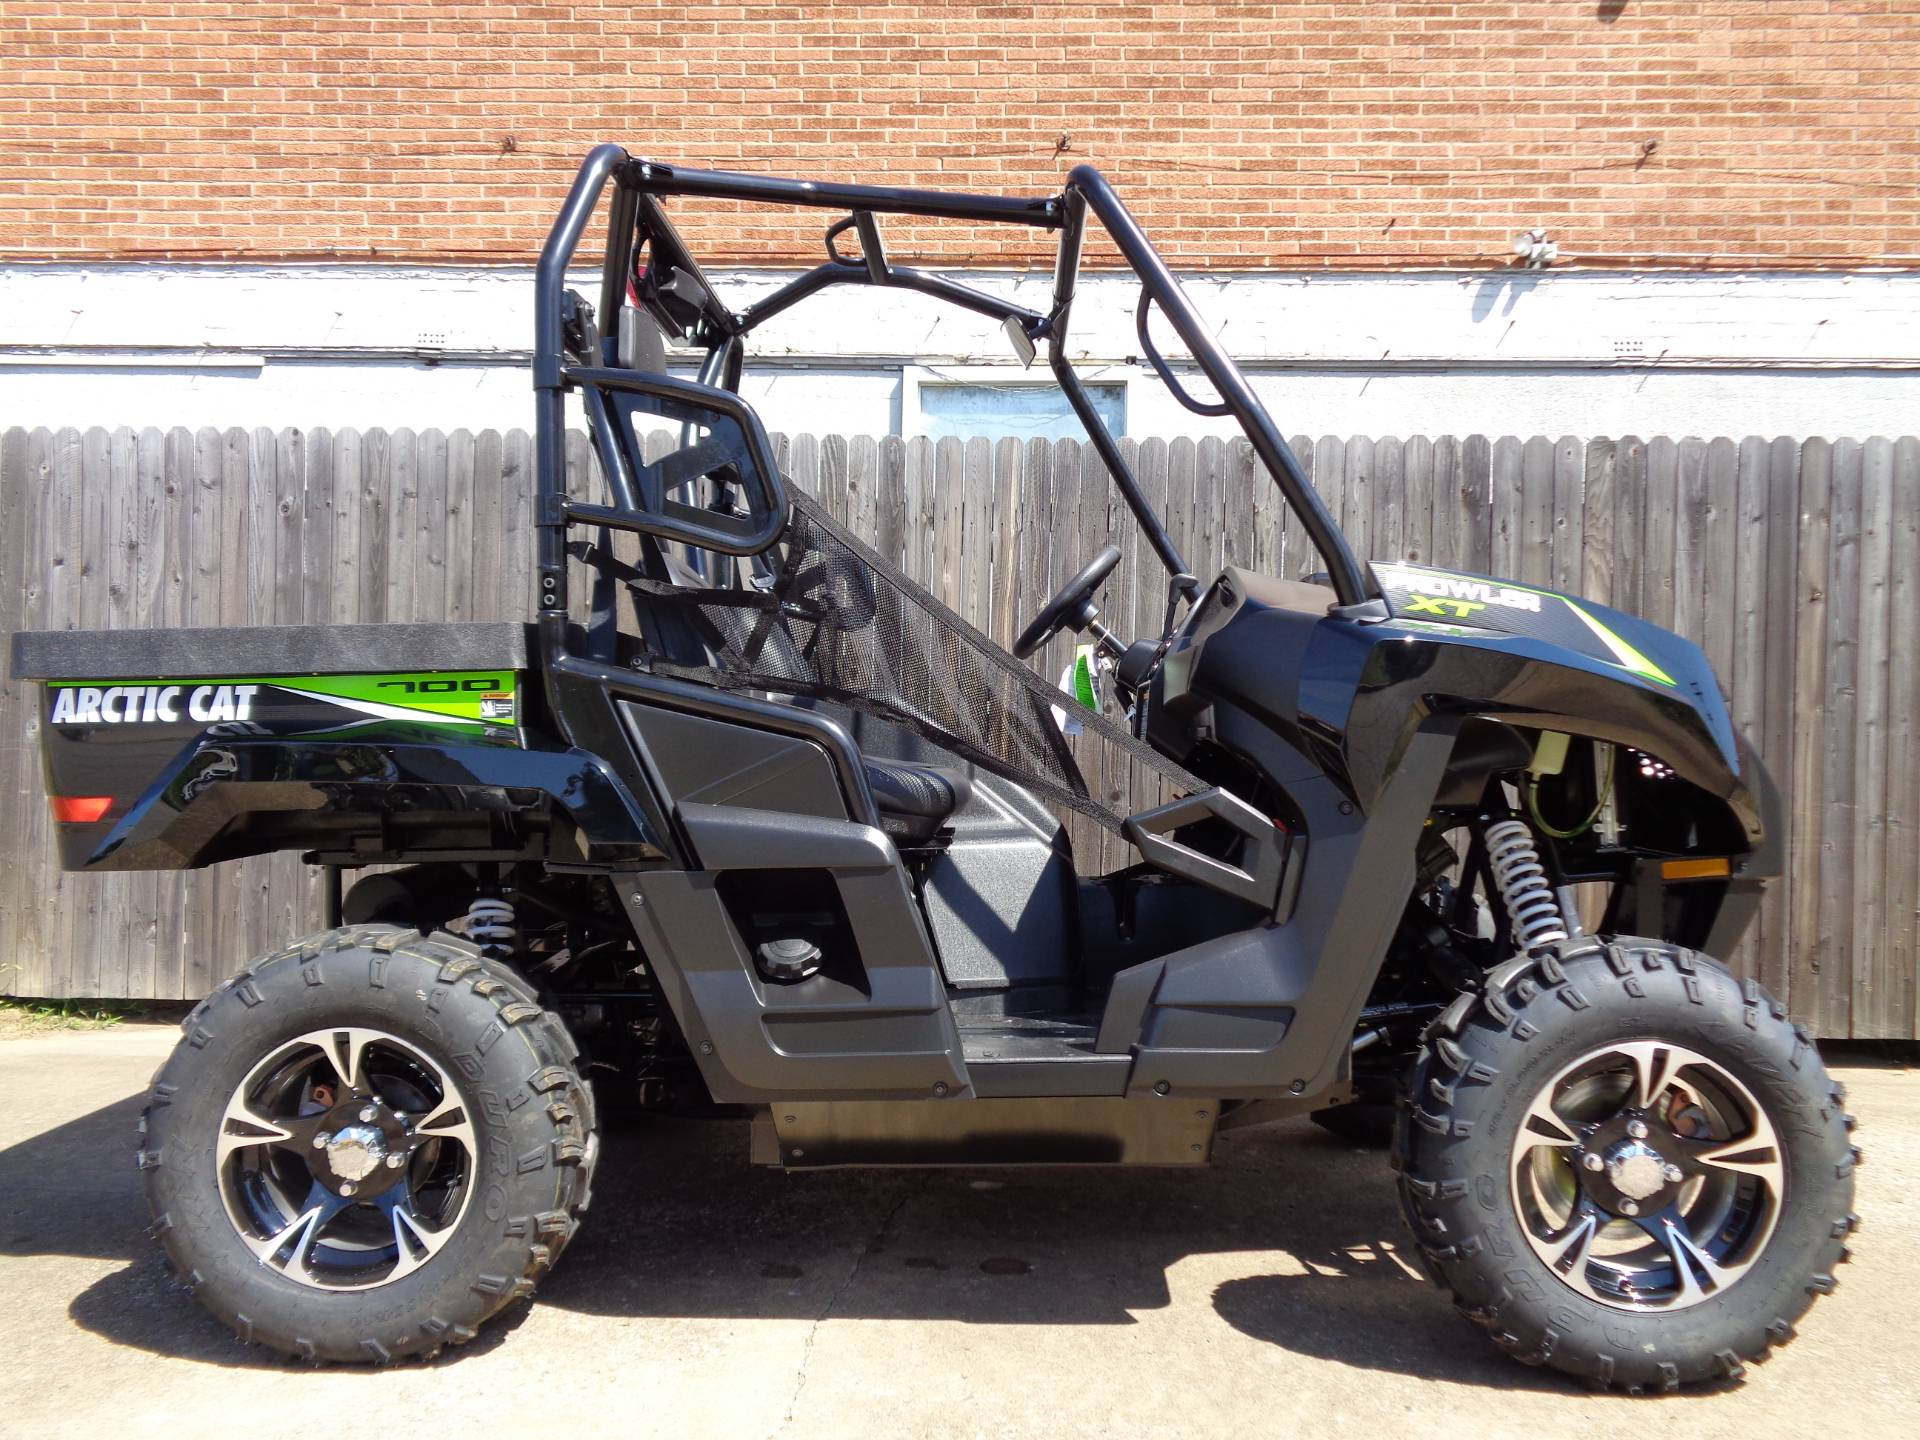 New 2017 Arctic Cat Prowler 700 XT EPS Utility Vehicles In ...